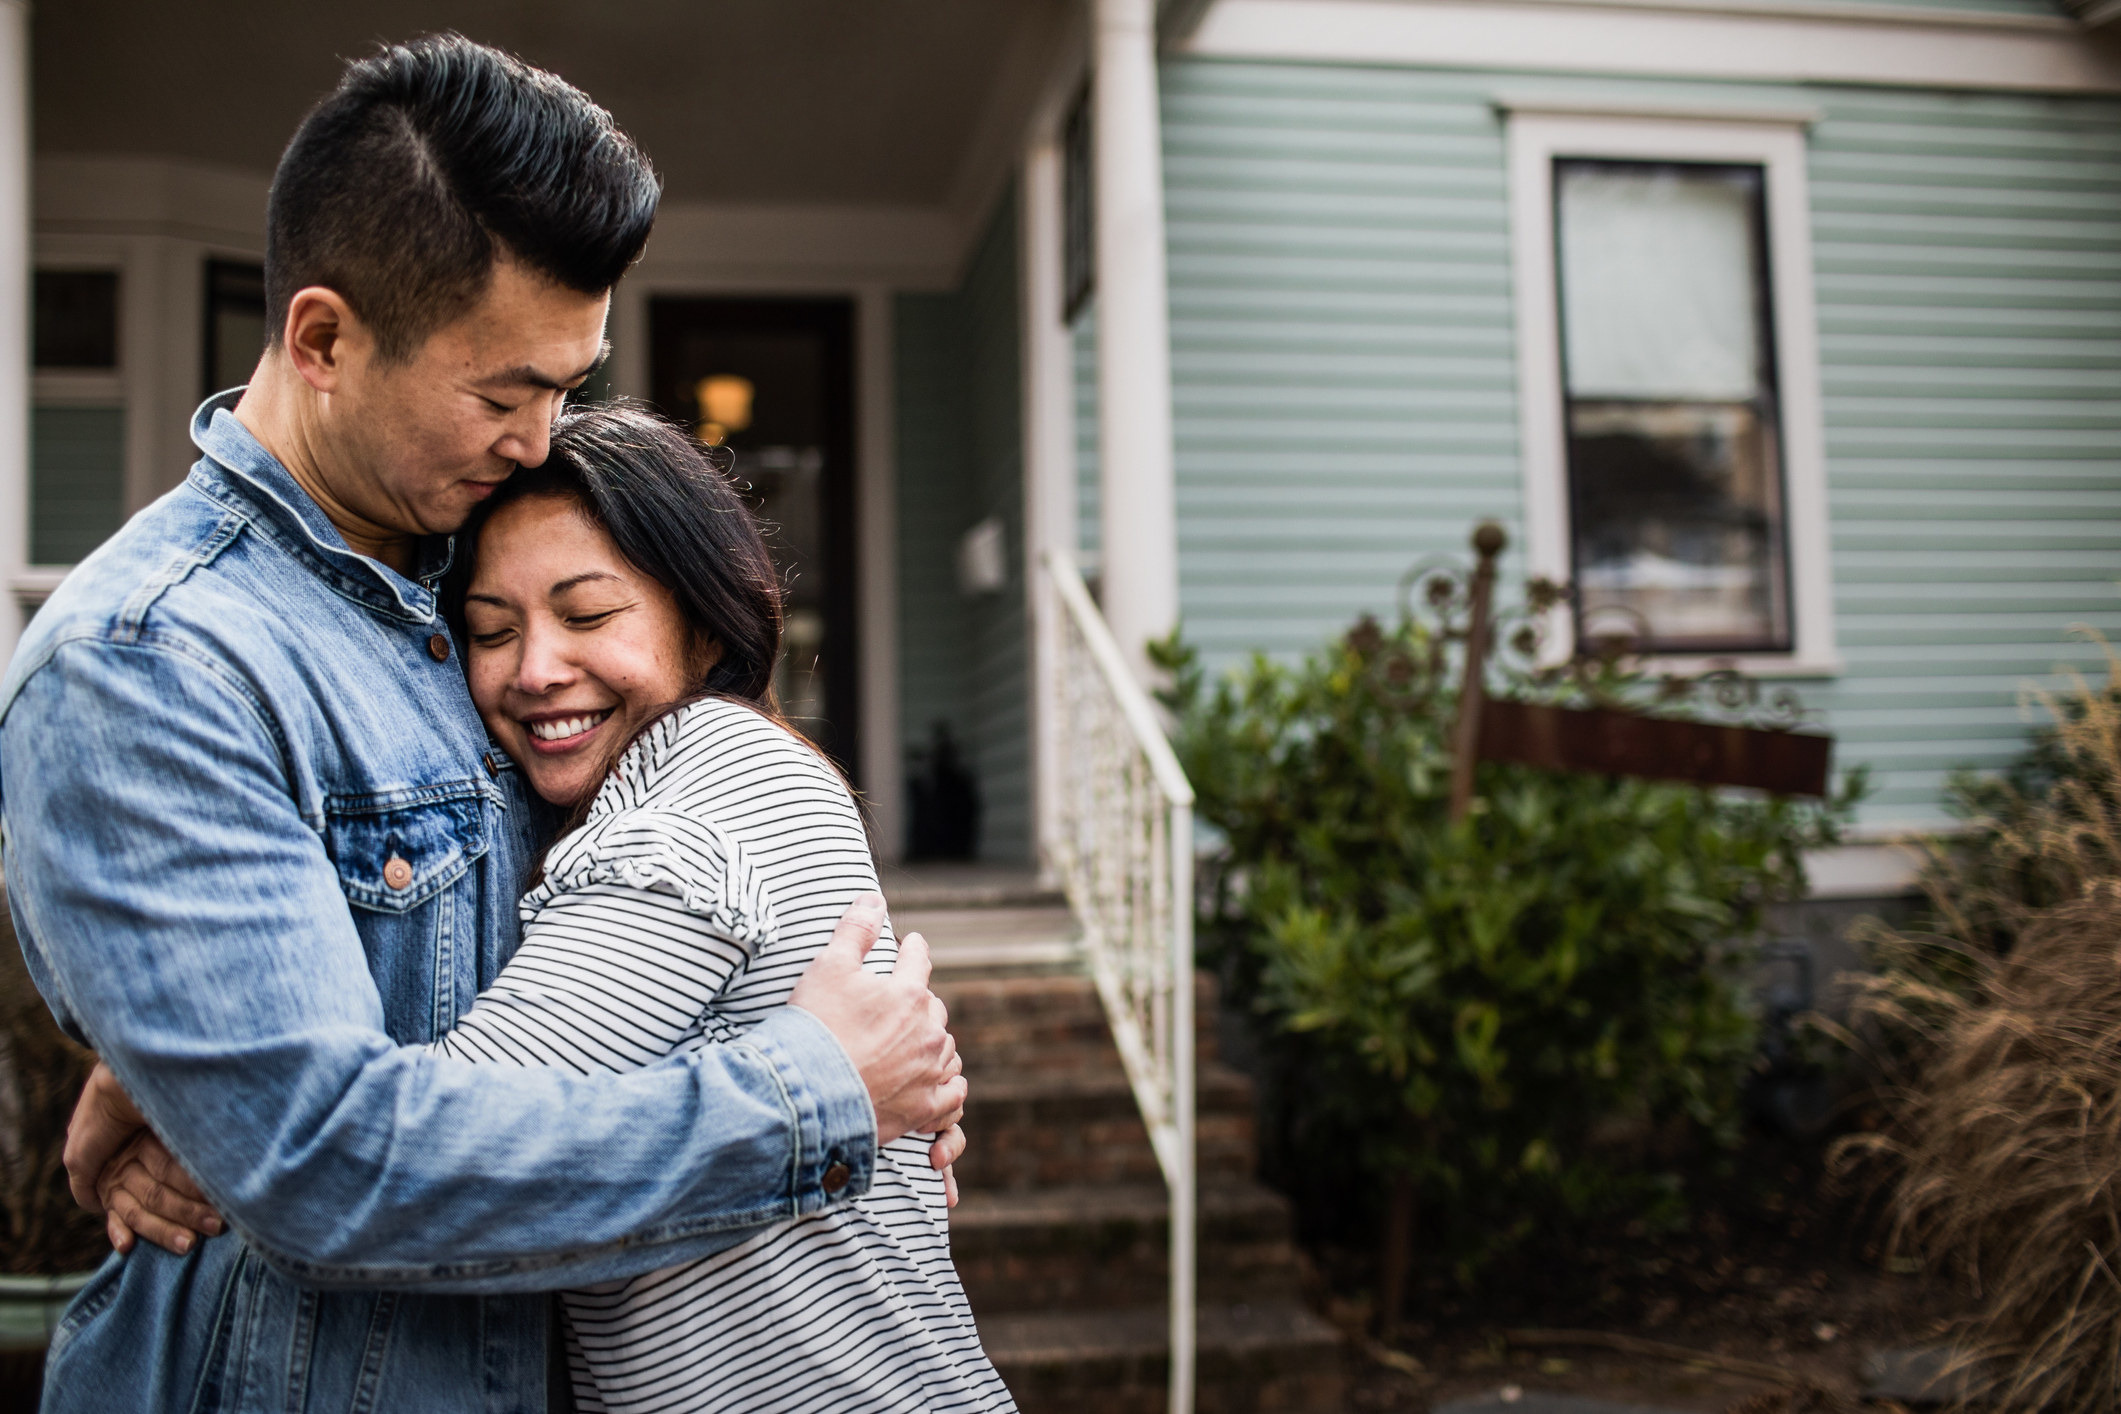 A couple embraces as they stand in front of a house